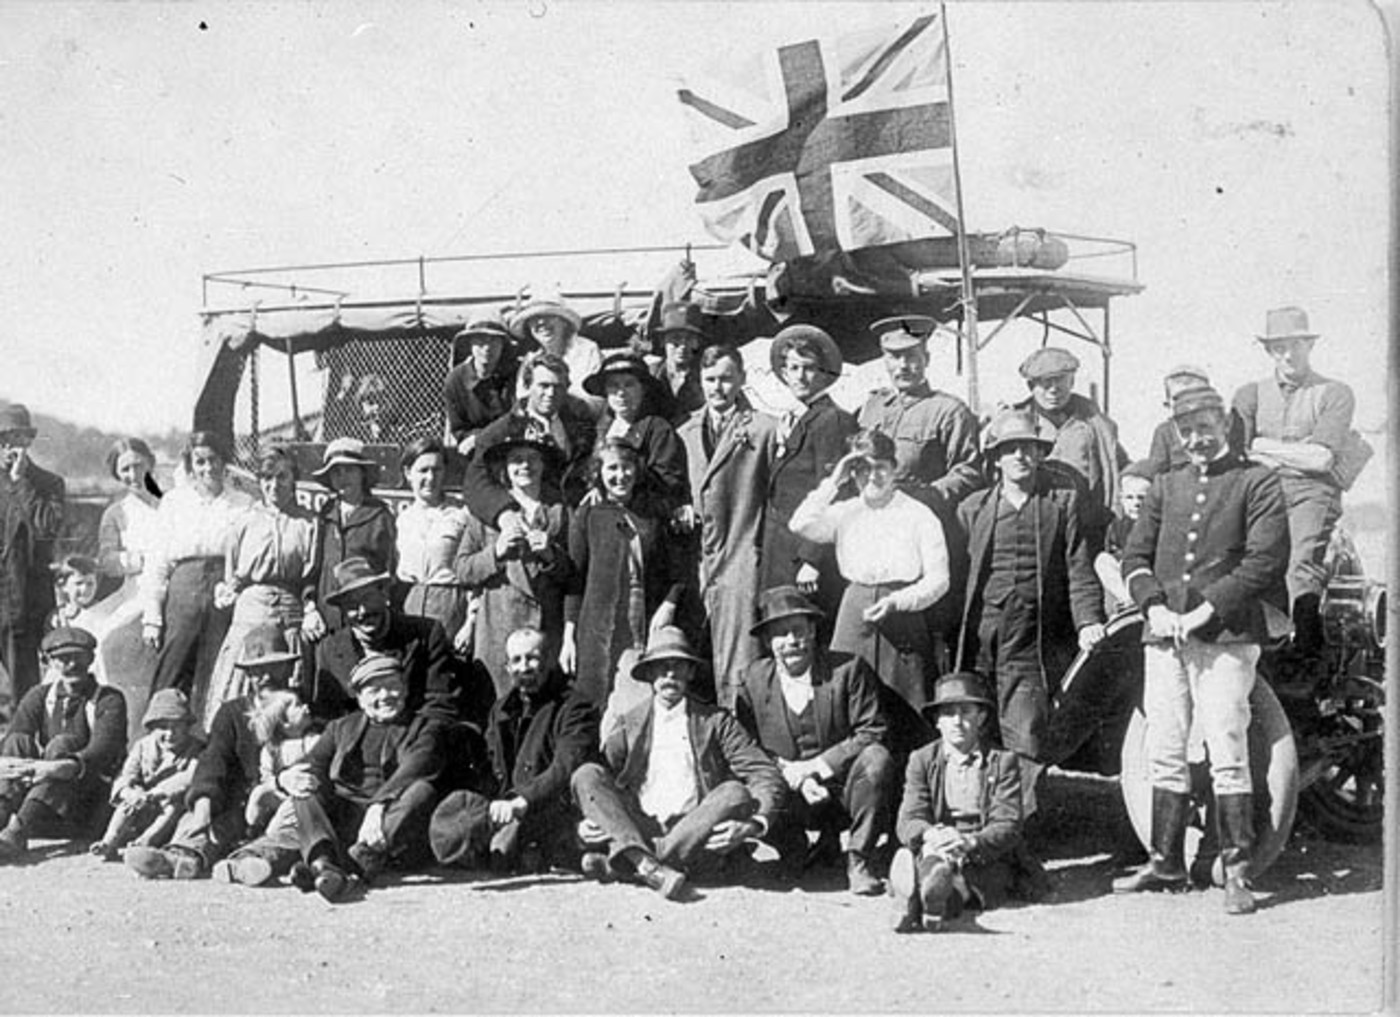 Enlisting for World War I. Recruiting Officer (beside flag ) with volunteers and their relatives and friends. Babe Cooper (second from the left of recruiting officer.) Bert Cooper has his arm around his sister. Constable McGrath is in uniform - Jerseyvill